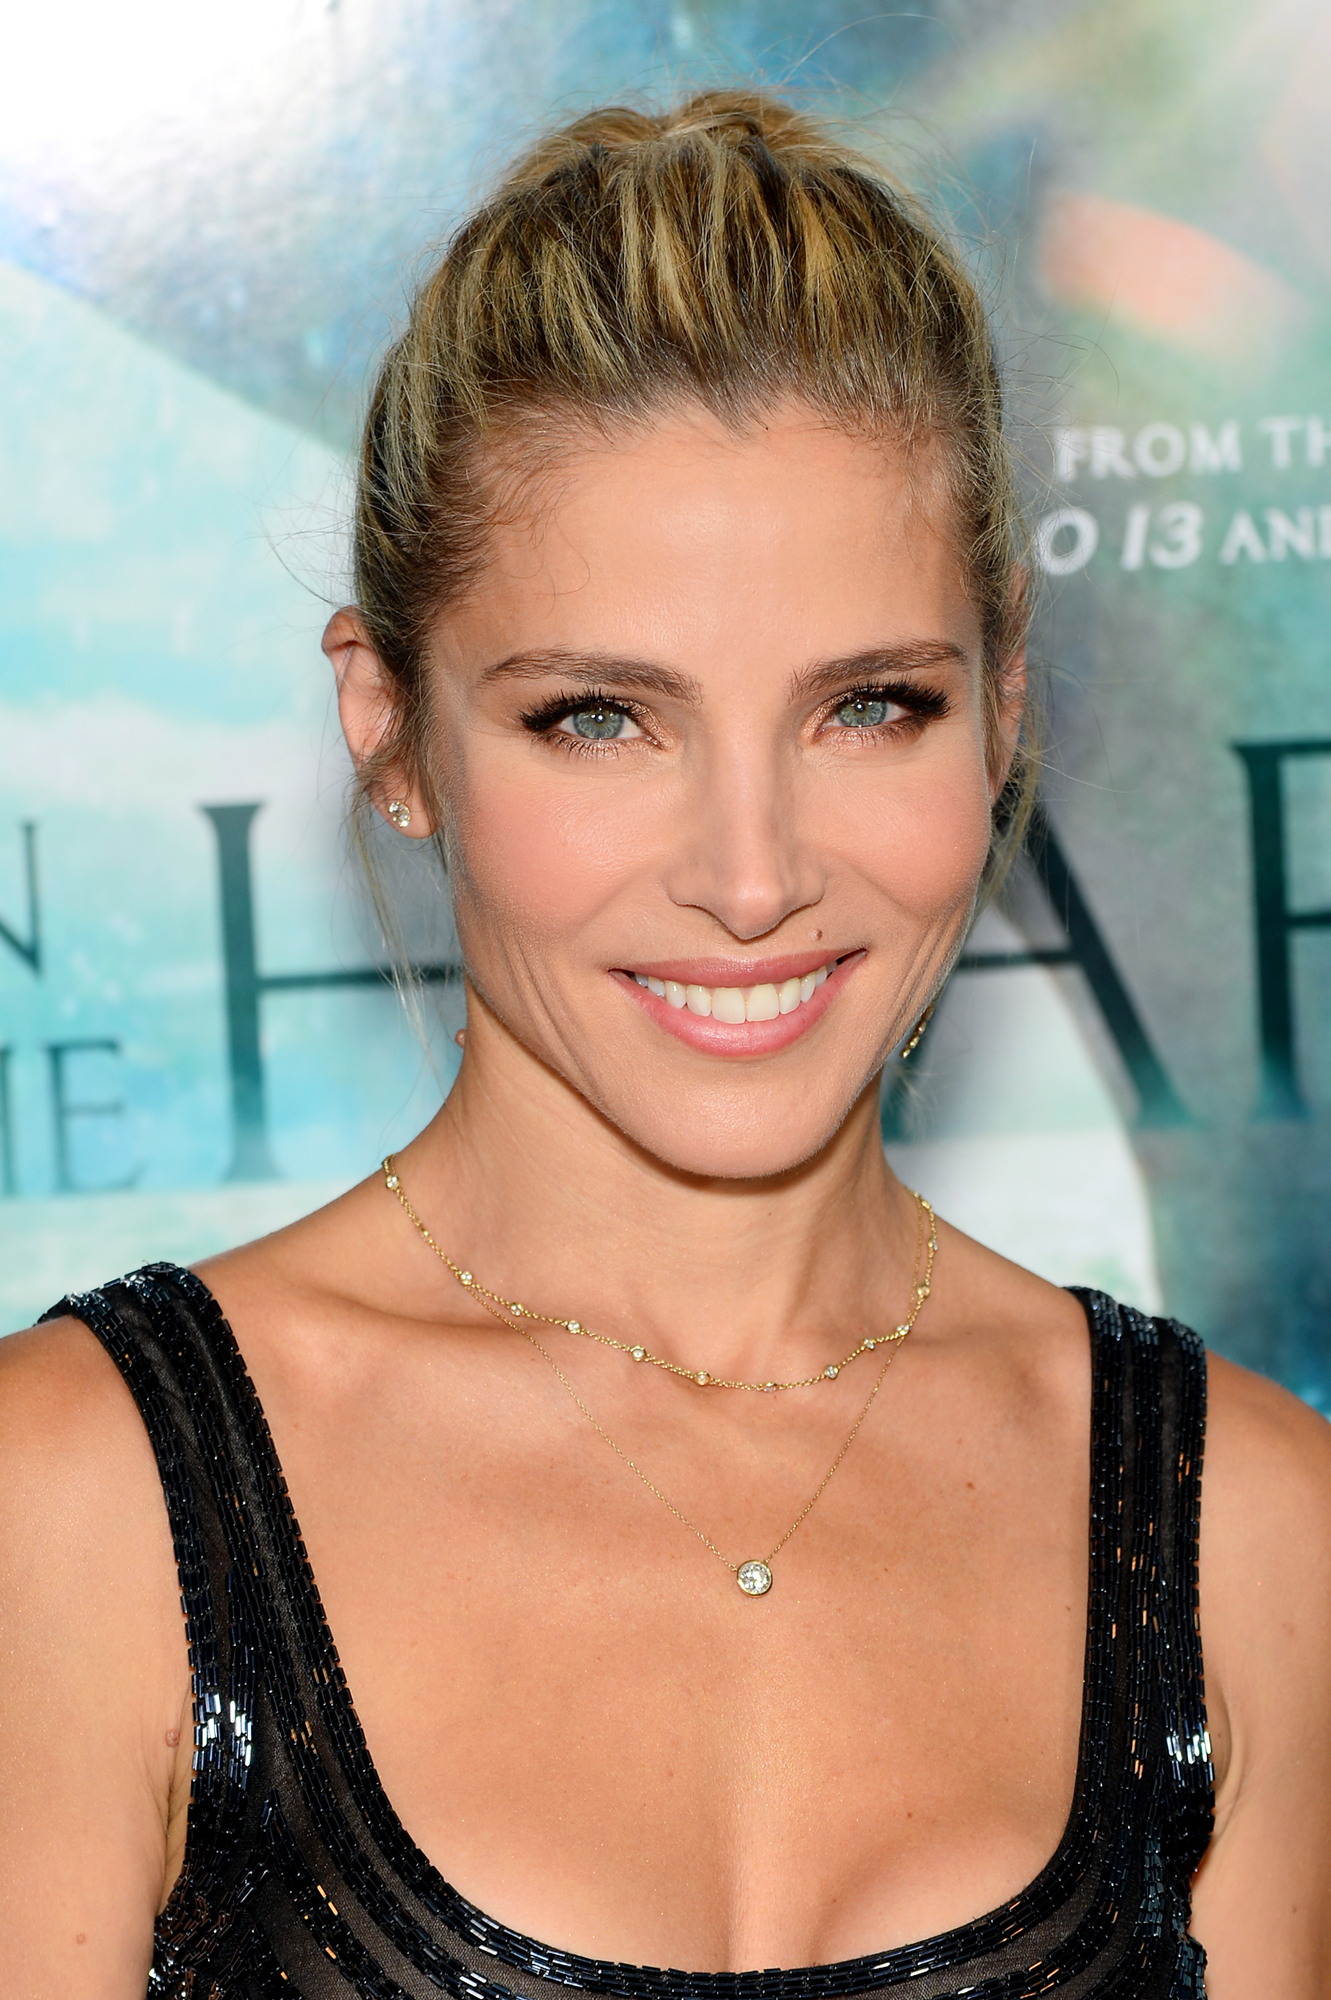 The 41-year old daughter of father José Francisco Lafuente and mother Cristina Pataky Medianu, 162 cm tall Elsa Pataky in 2018 photo